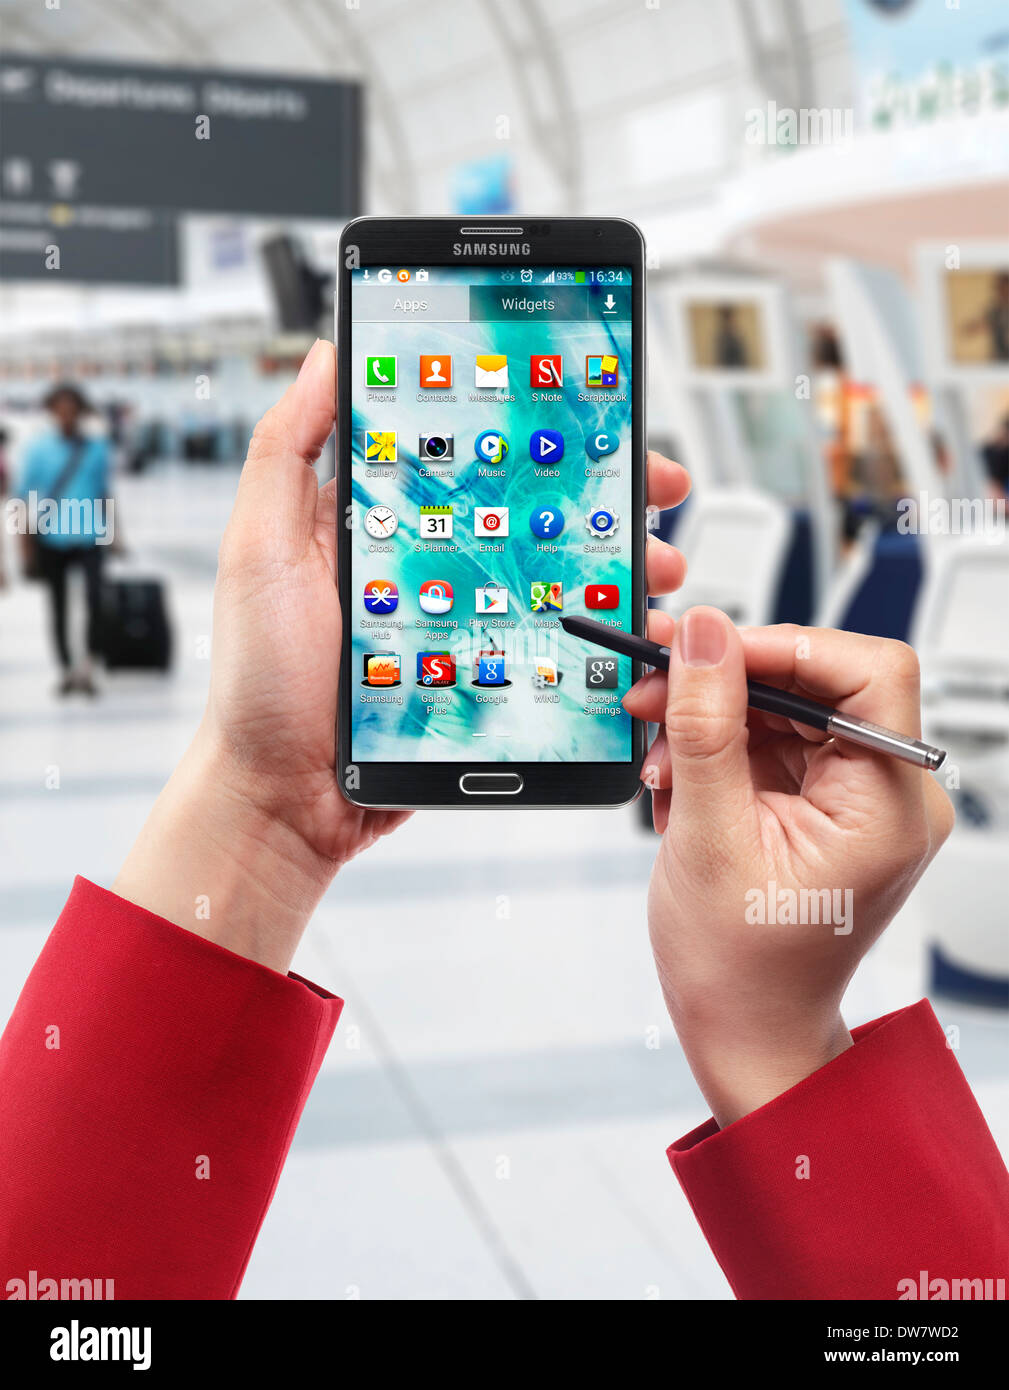 Woman hands with Samsung Galaxy Note III smartphone at airport - Stock Image